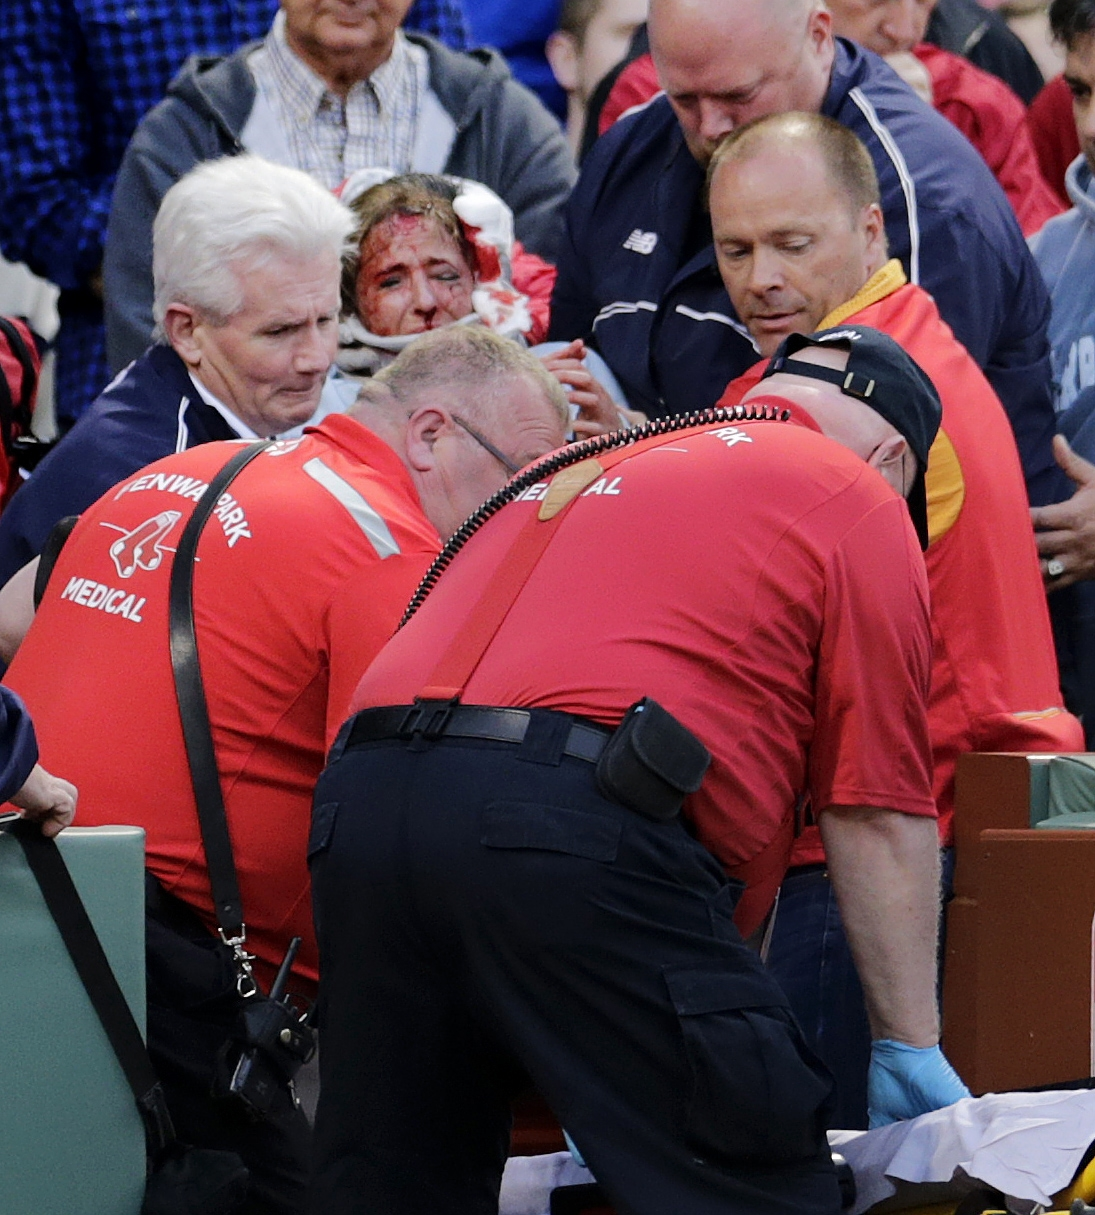 RETRANSMISSION TO CORRECT ID OF PLAYER - A fan, who was accidentally hit in the head with a broken bat by Oakland Athletics' Brett Lawrie, is helped from the stands during a baseball game against the Boston Red Sox at Fenway Park in Boston, Friday, June 5